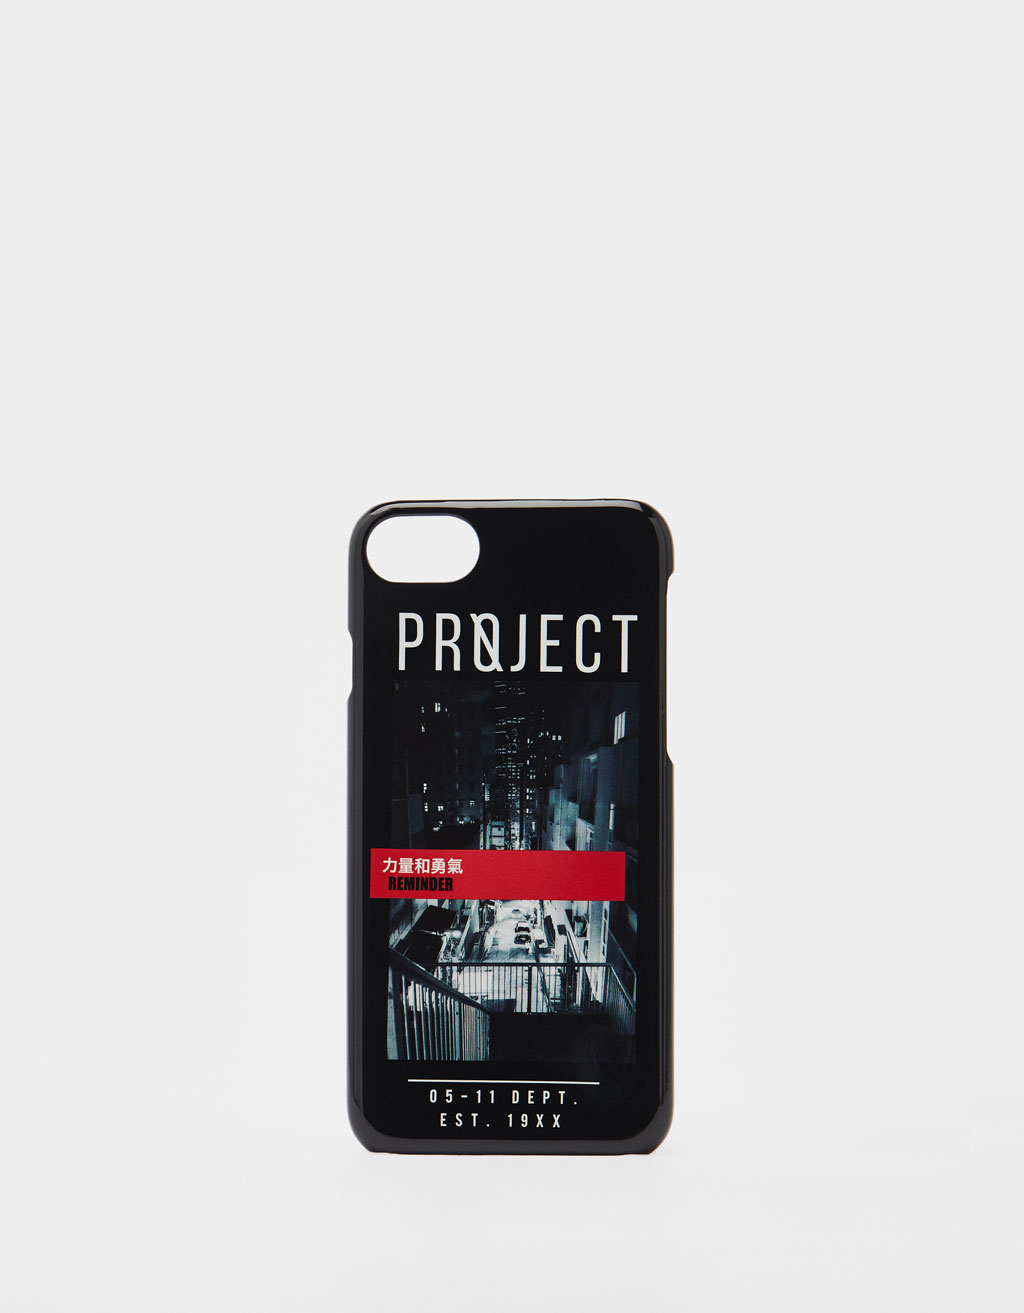 Photographic iPhone 6/6s/7/8 Case